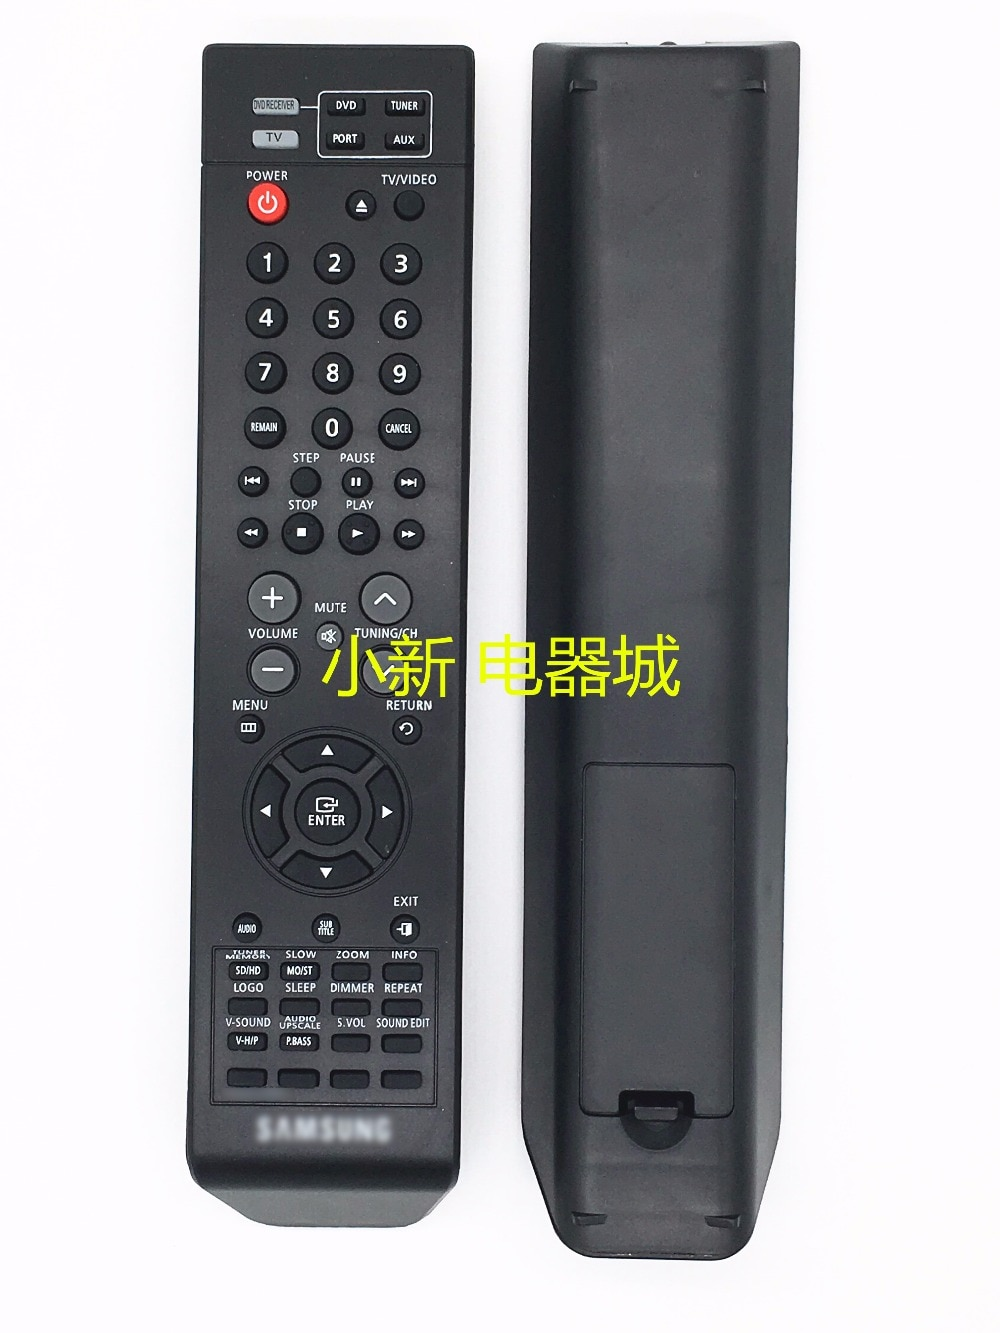 Remote Control For Samsung HT-Z510 HT-Z510T HT-Z510T/XAA AH59-01907S AH59-01907R HT-Z110 AH59-01907C ADVD Home Theater System